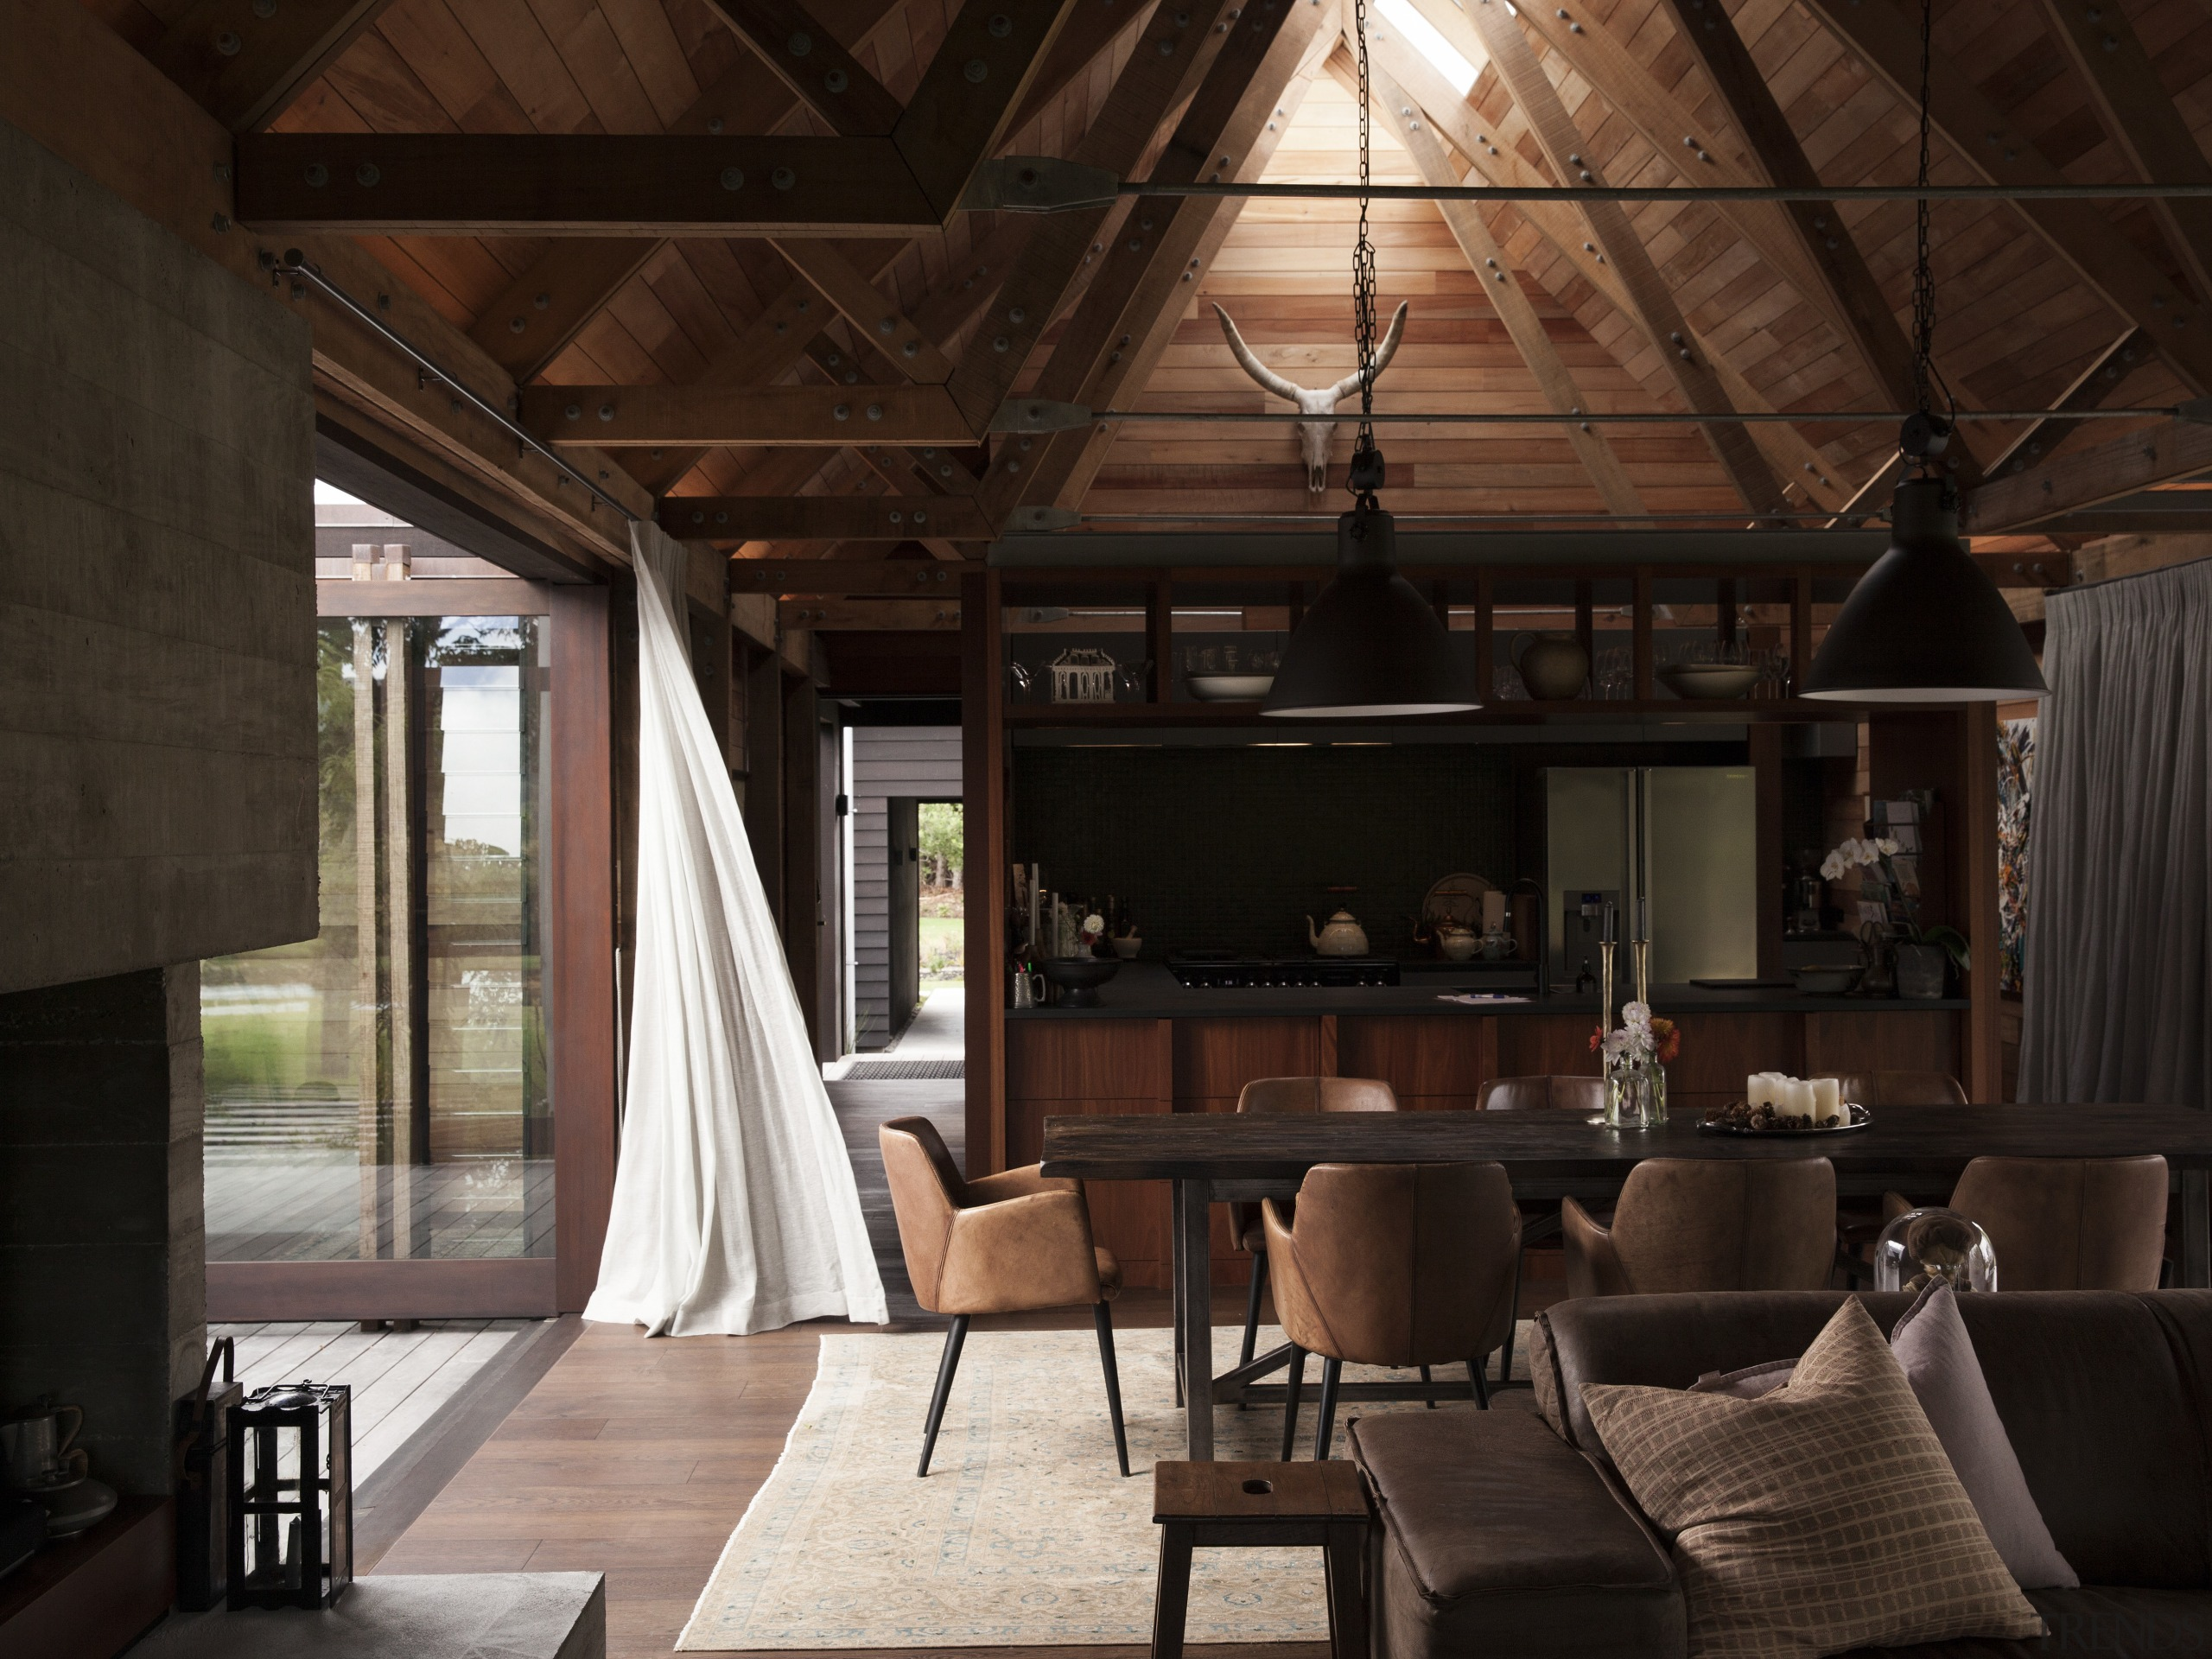 On this award-winning home, the cathedral-like interior has ceiling, interior design, living room, wood, brown, black